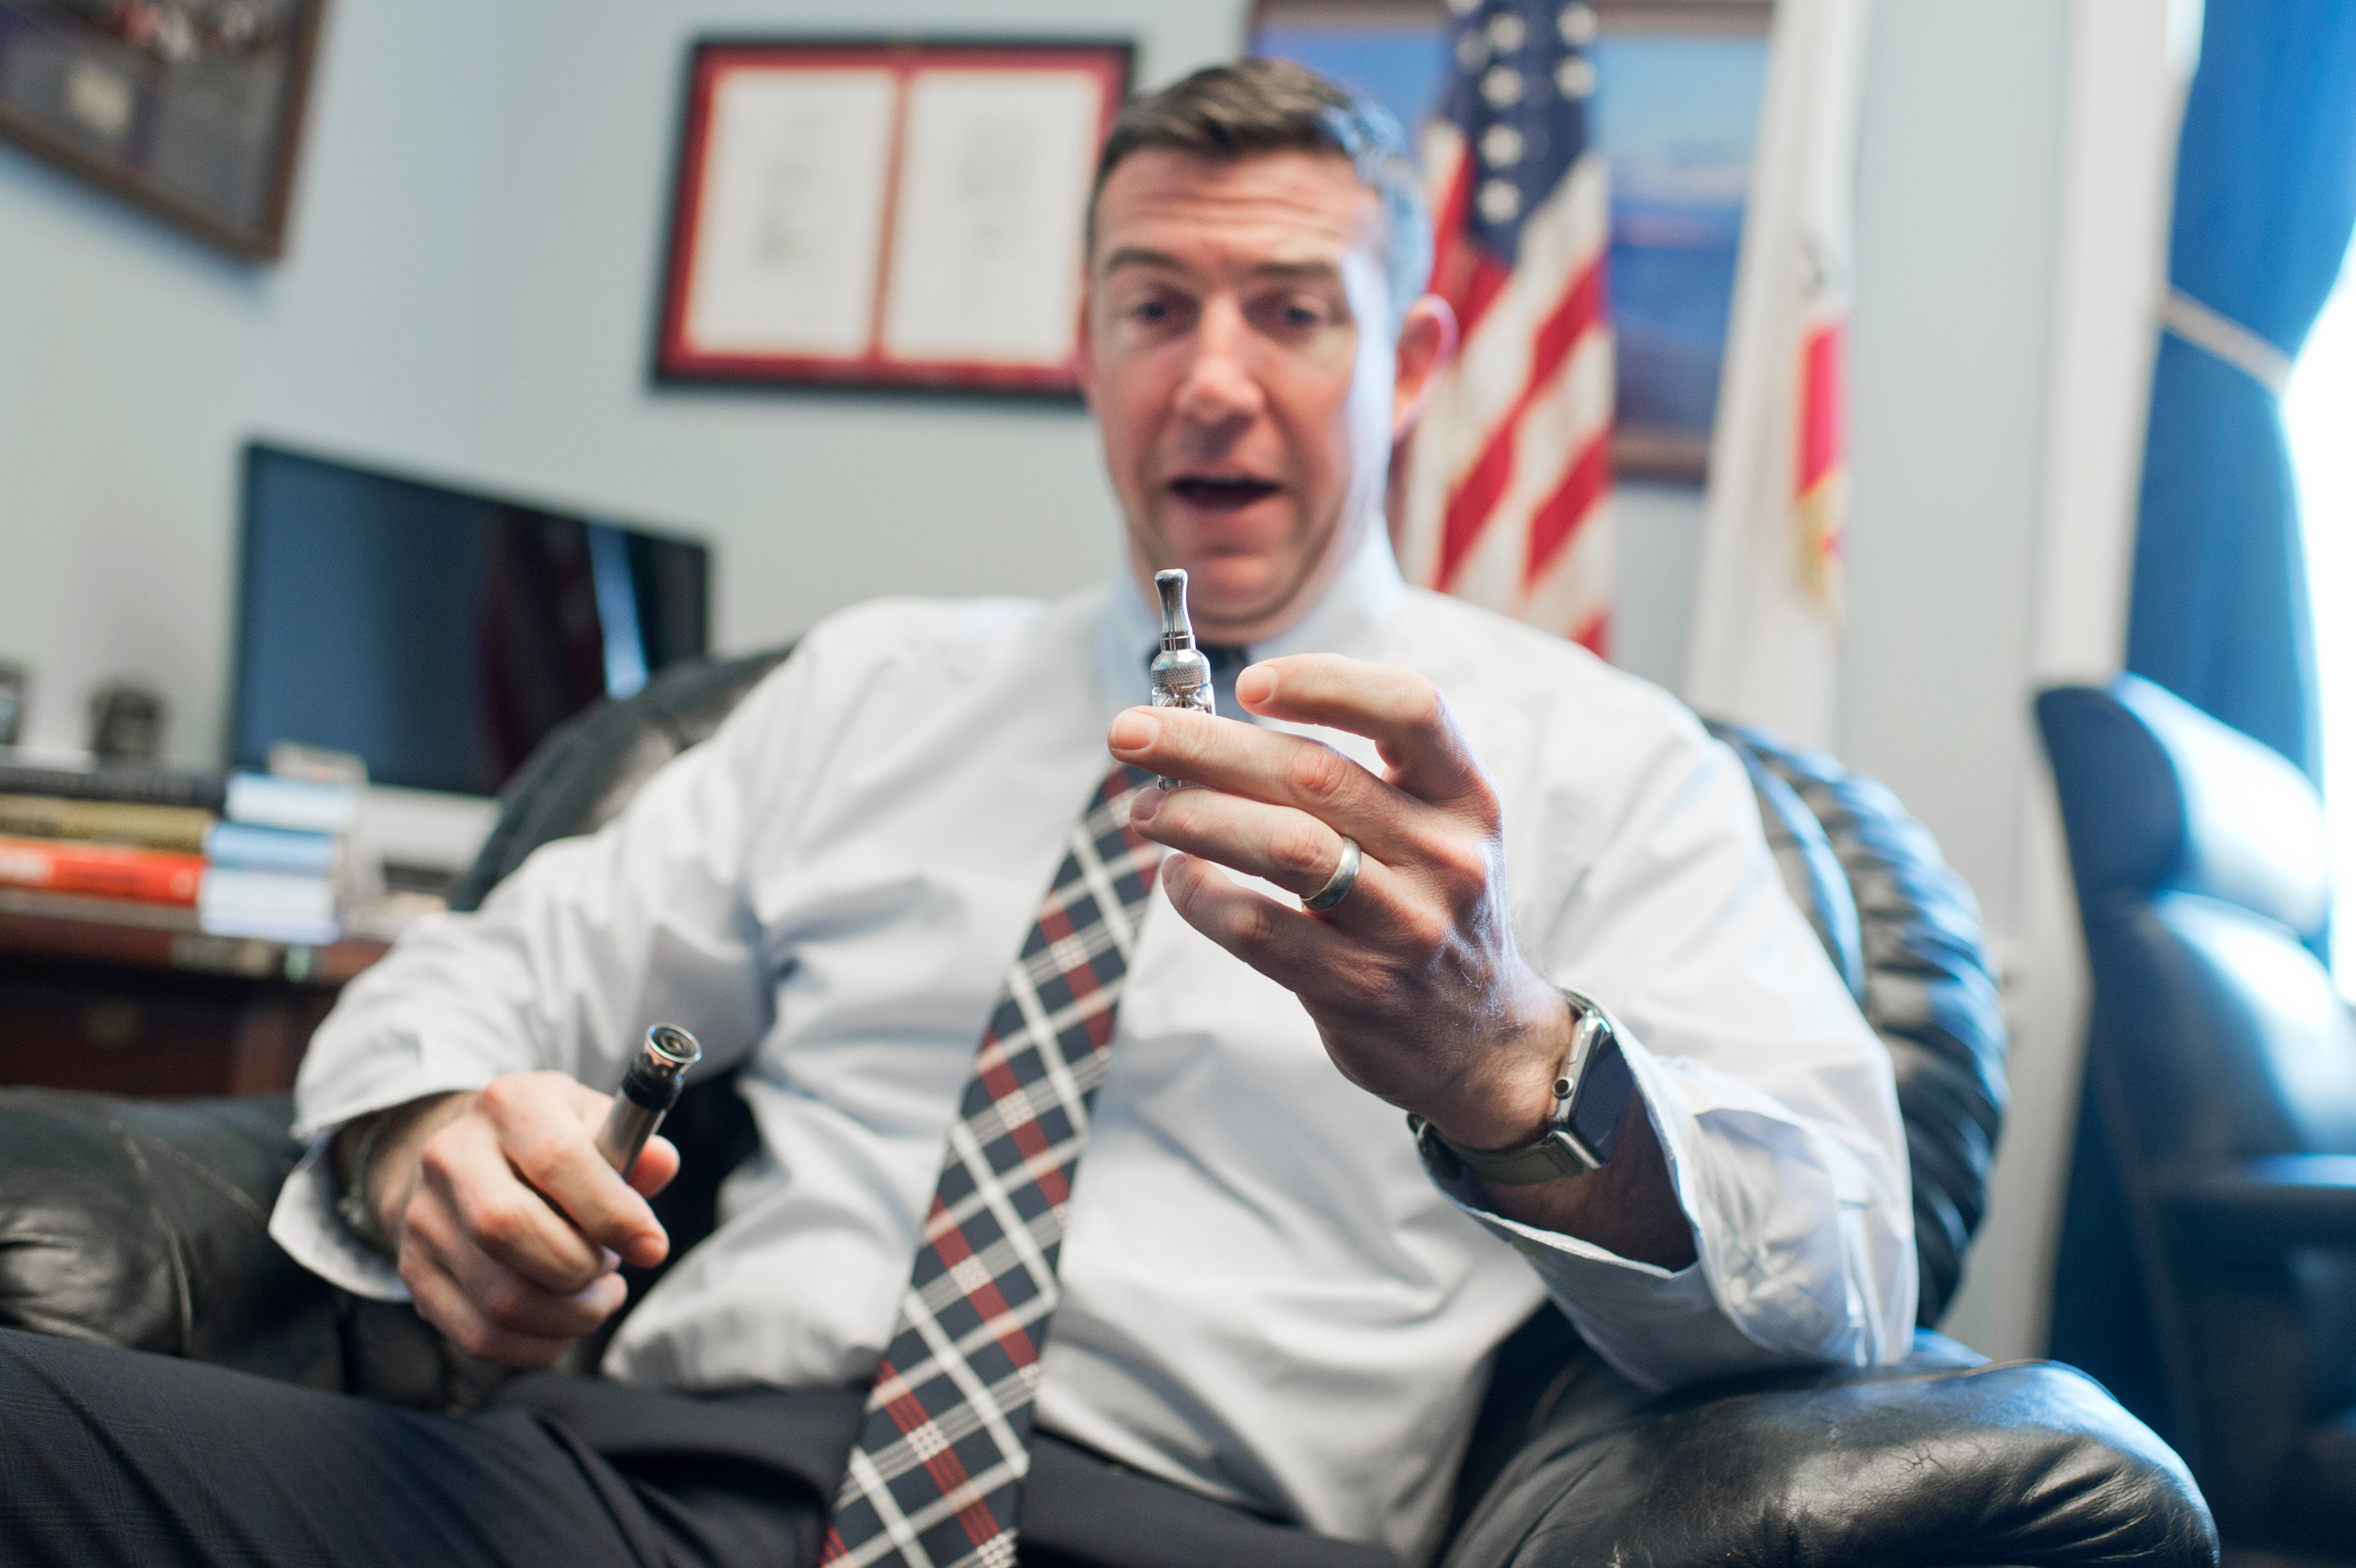 UNITED STATES - JANUARY 13: Rep. Duncan Hunter, R-Calif., is interviewed about his vaporizer pen in his Rayburn office, January 13, 2016. (Photo By Tom Williams/CQ Roll Call)